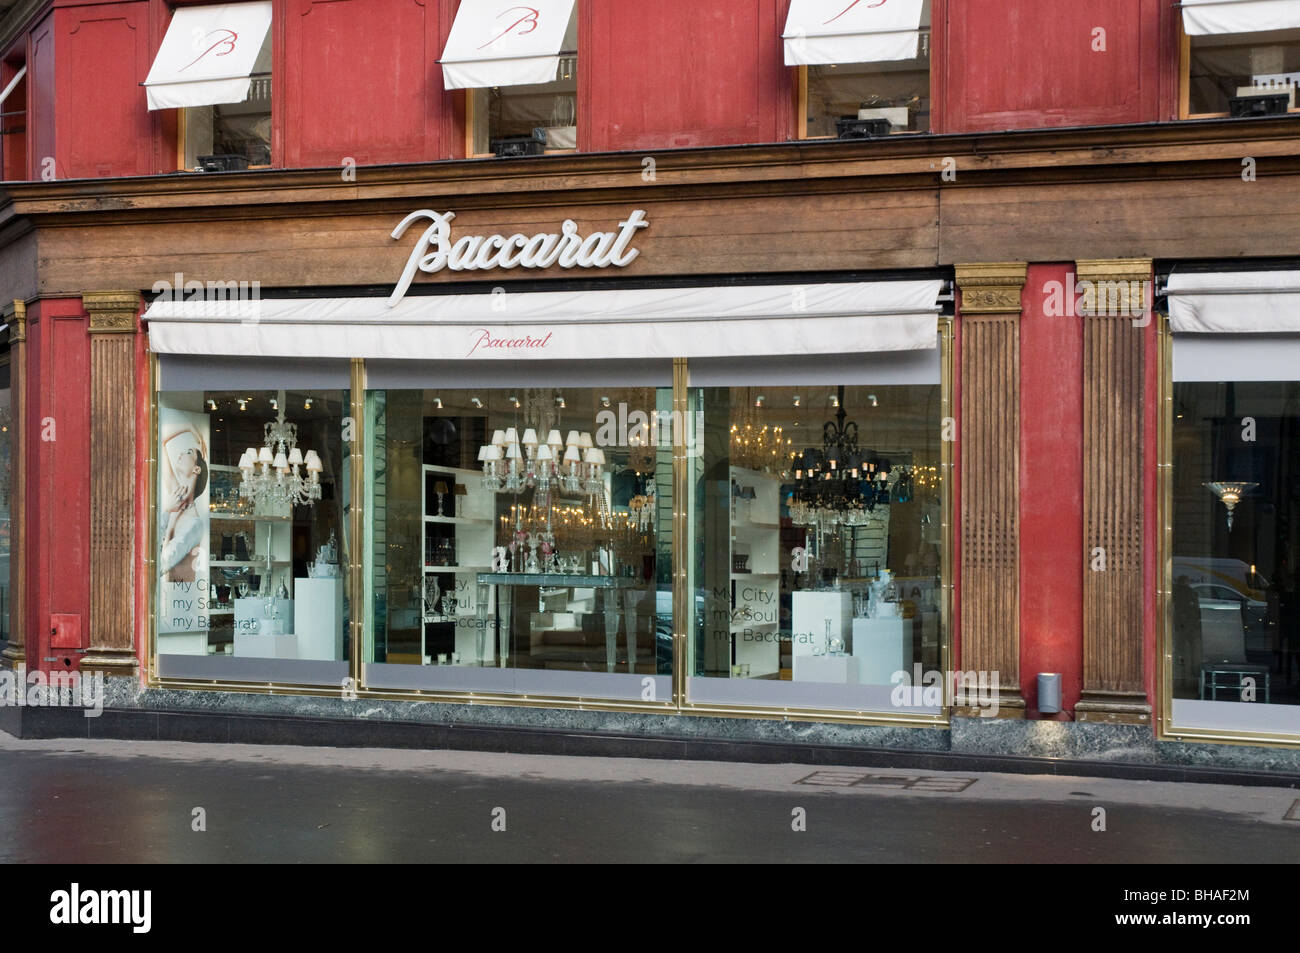 baccarat crystal shop place de la madeleine paris stock photo royalty free image 27890876. Black Bedroom Furniture Sets. Home Design Ideas